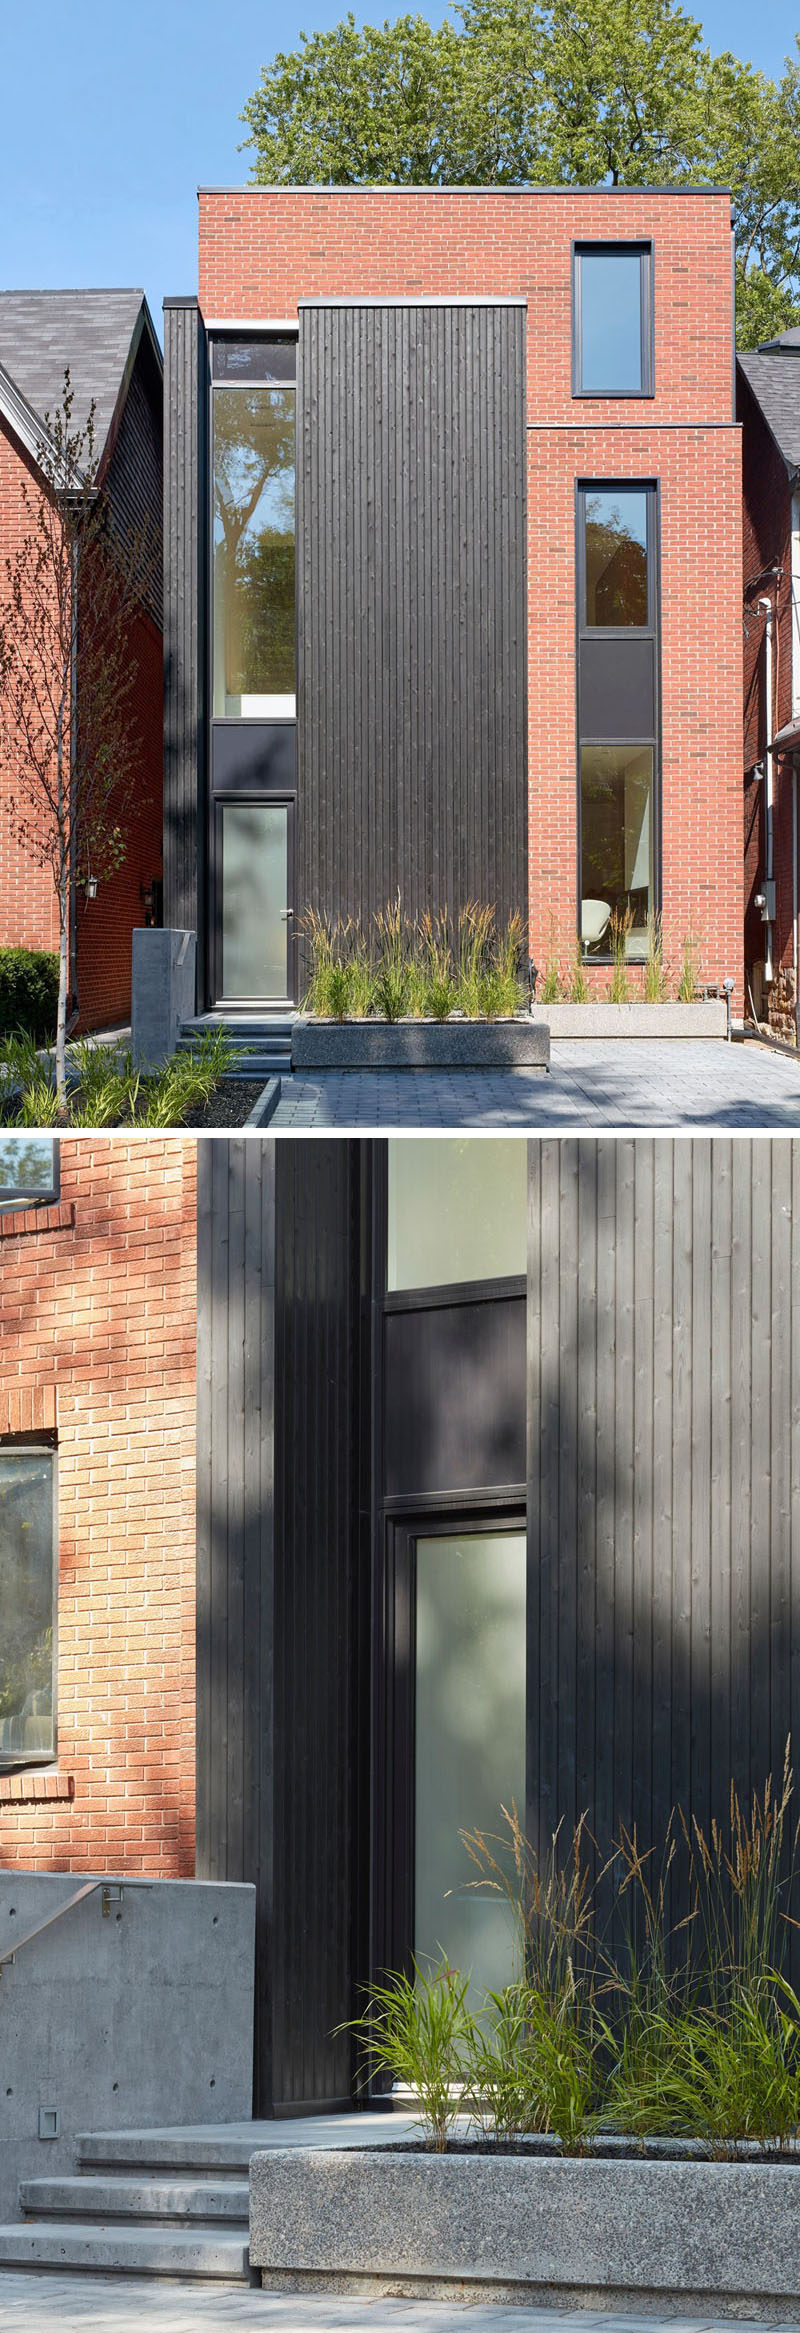 This modern house in Toronto features tall slender windows with a red brick and black-stained cedar facade. #ModernHouse #BlackCedar #RedBrick #Facade